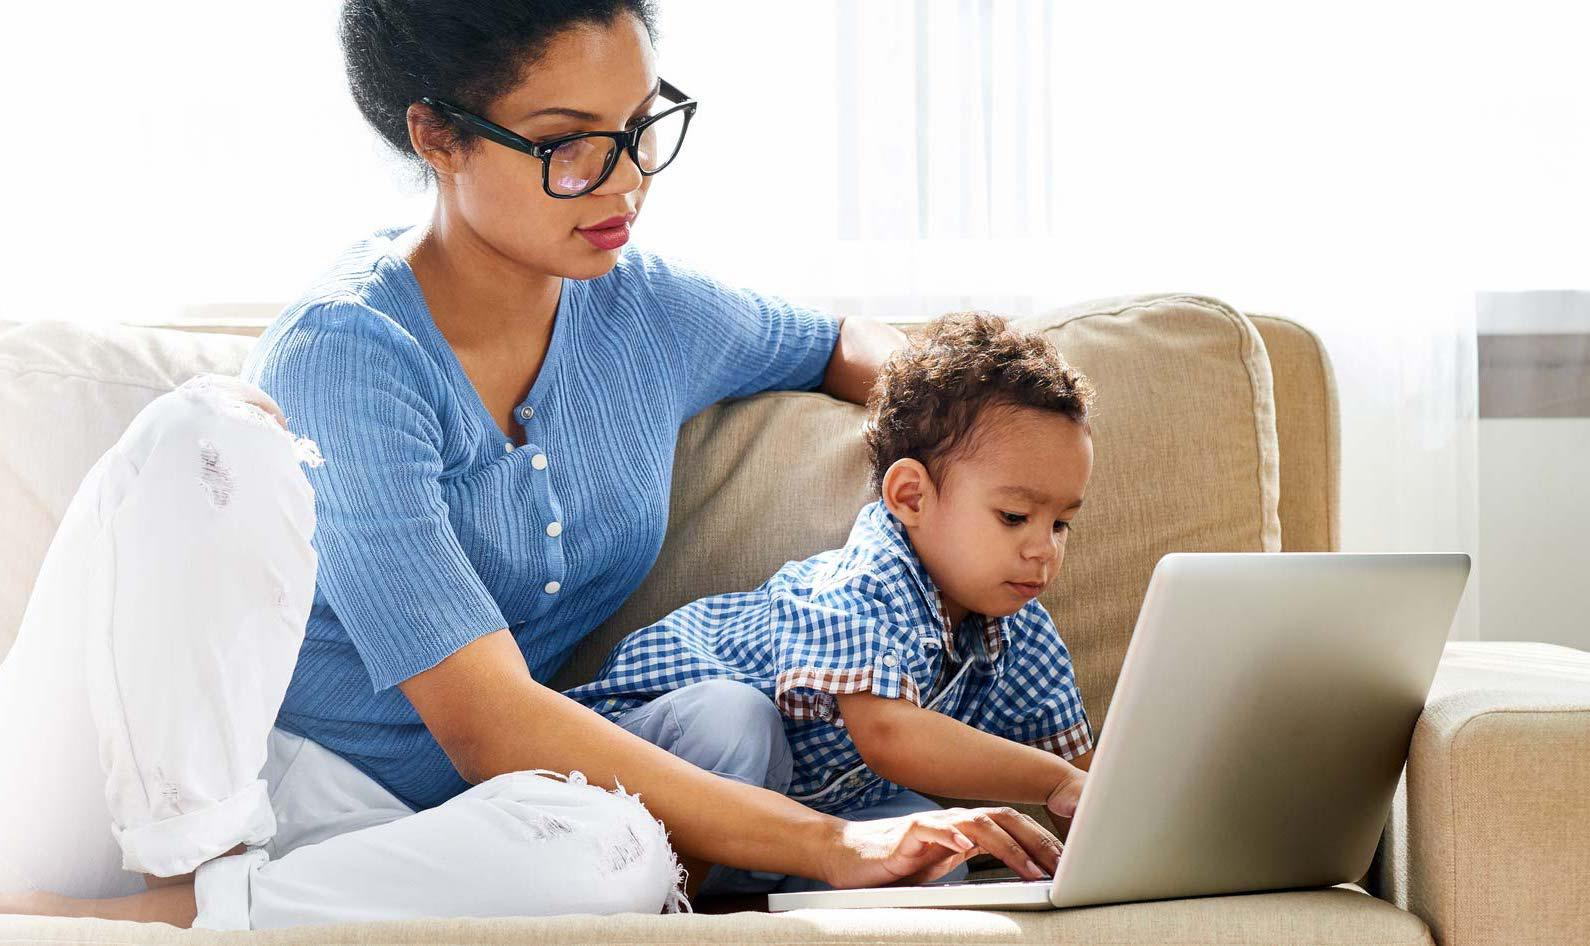 woman with baby on laptop